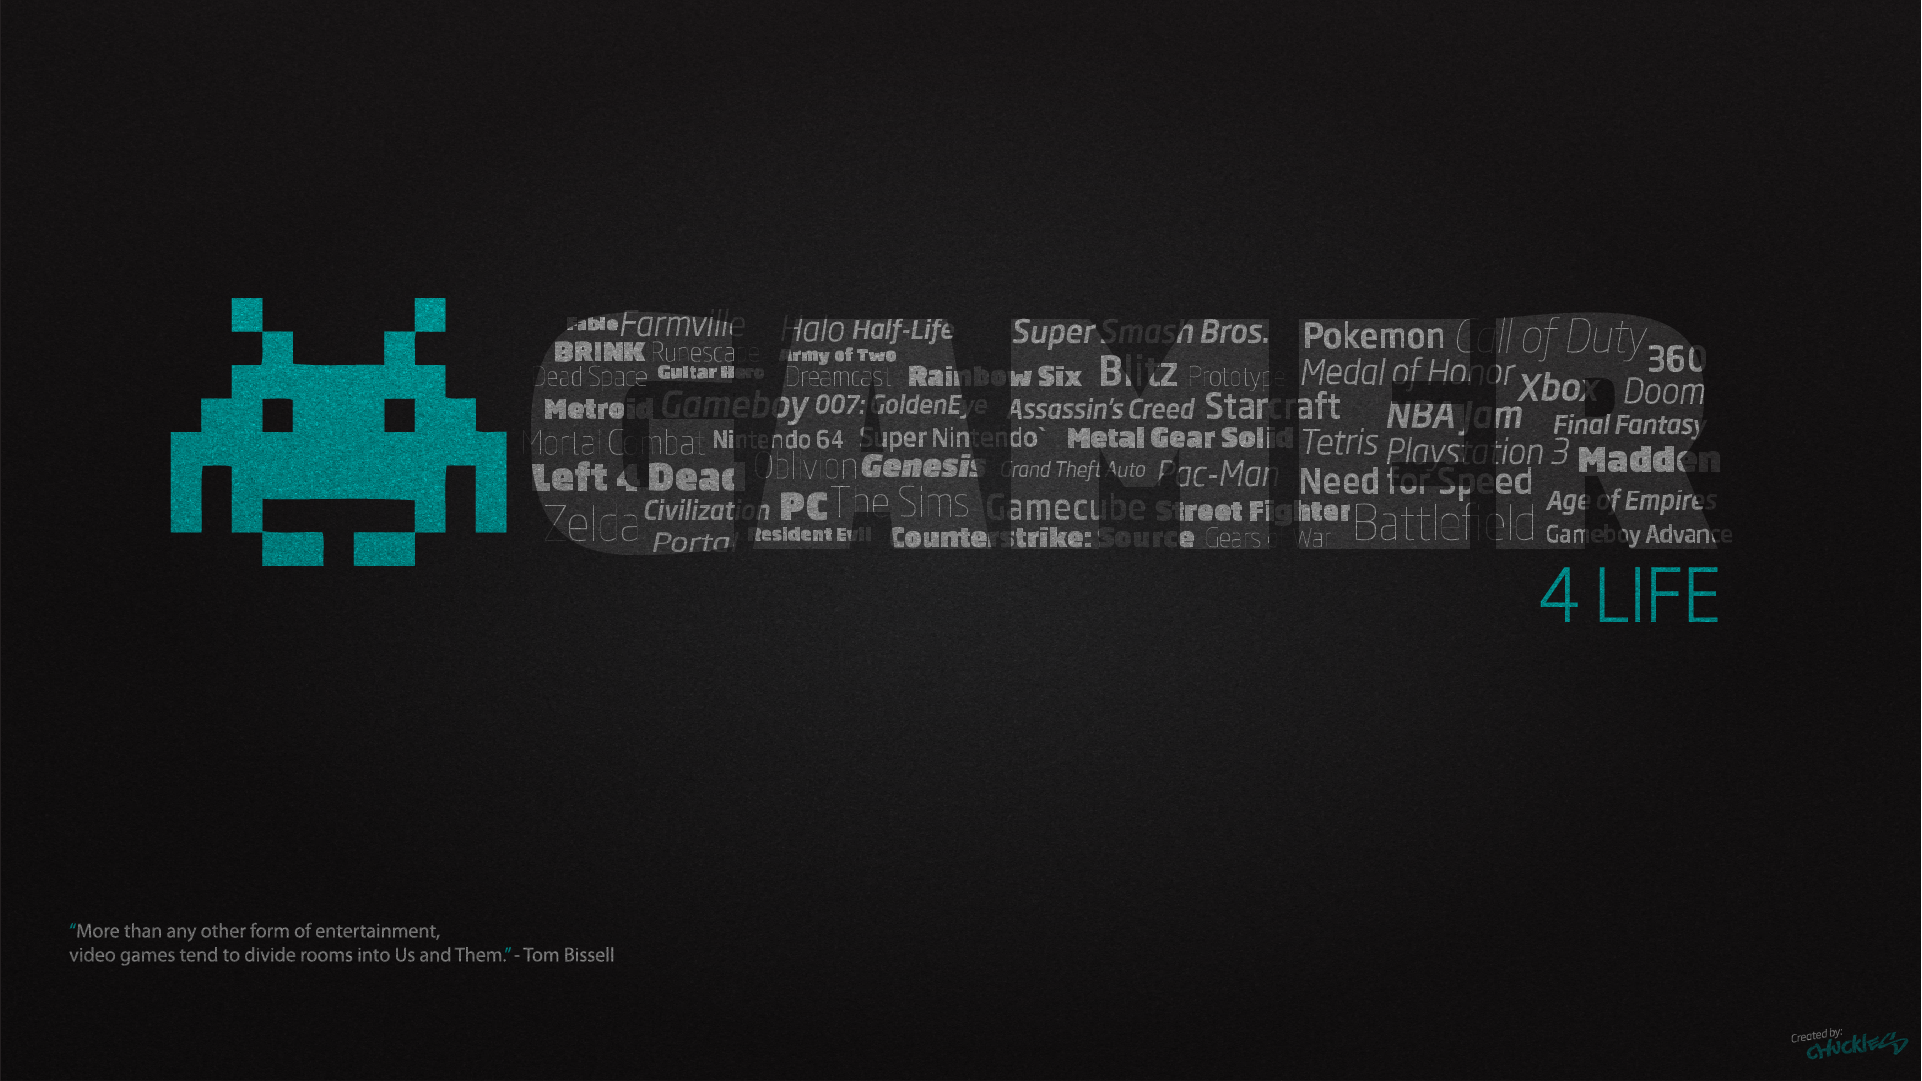 Gamer for Life Desktop Wallpaper 1920x1080 by ChucklesMedia on 1922x1081